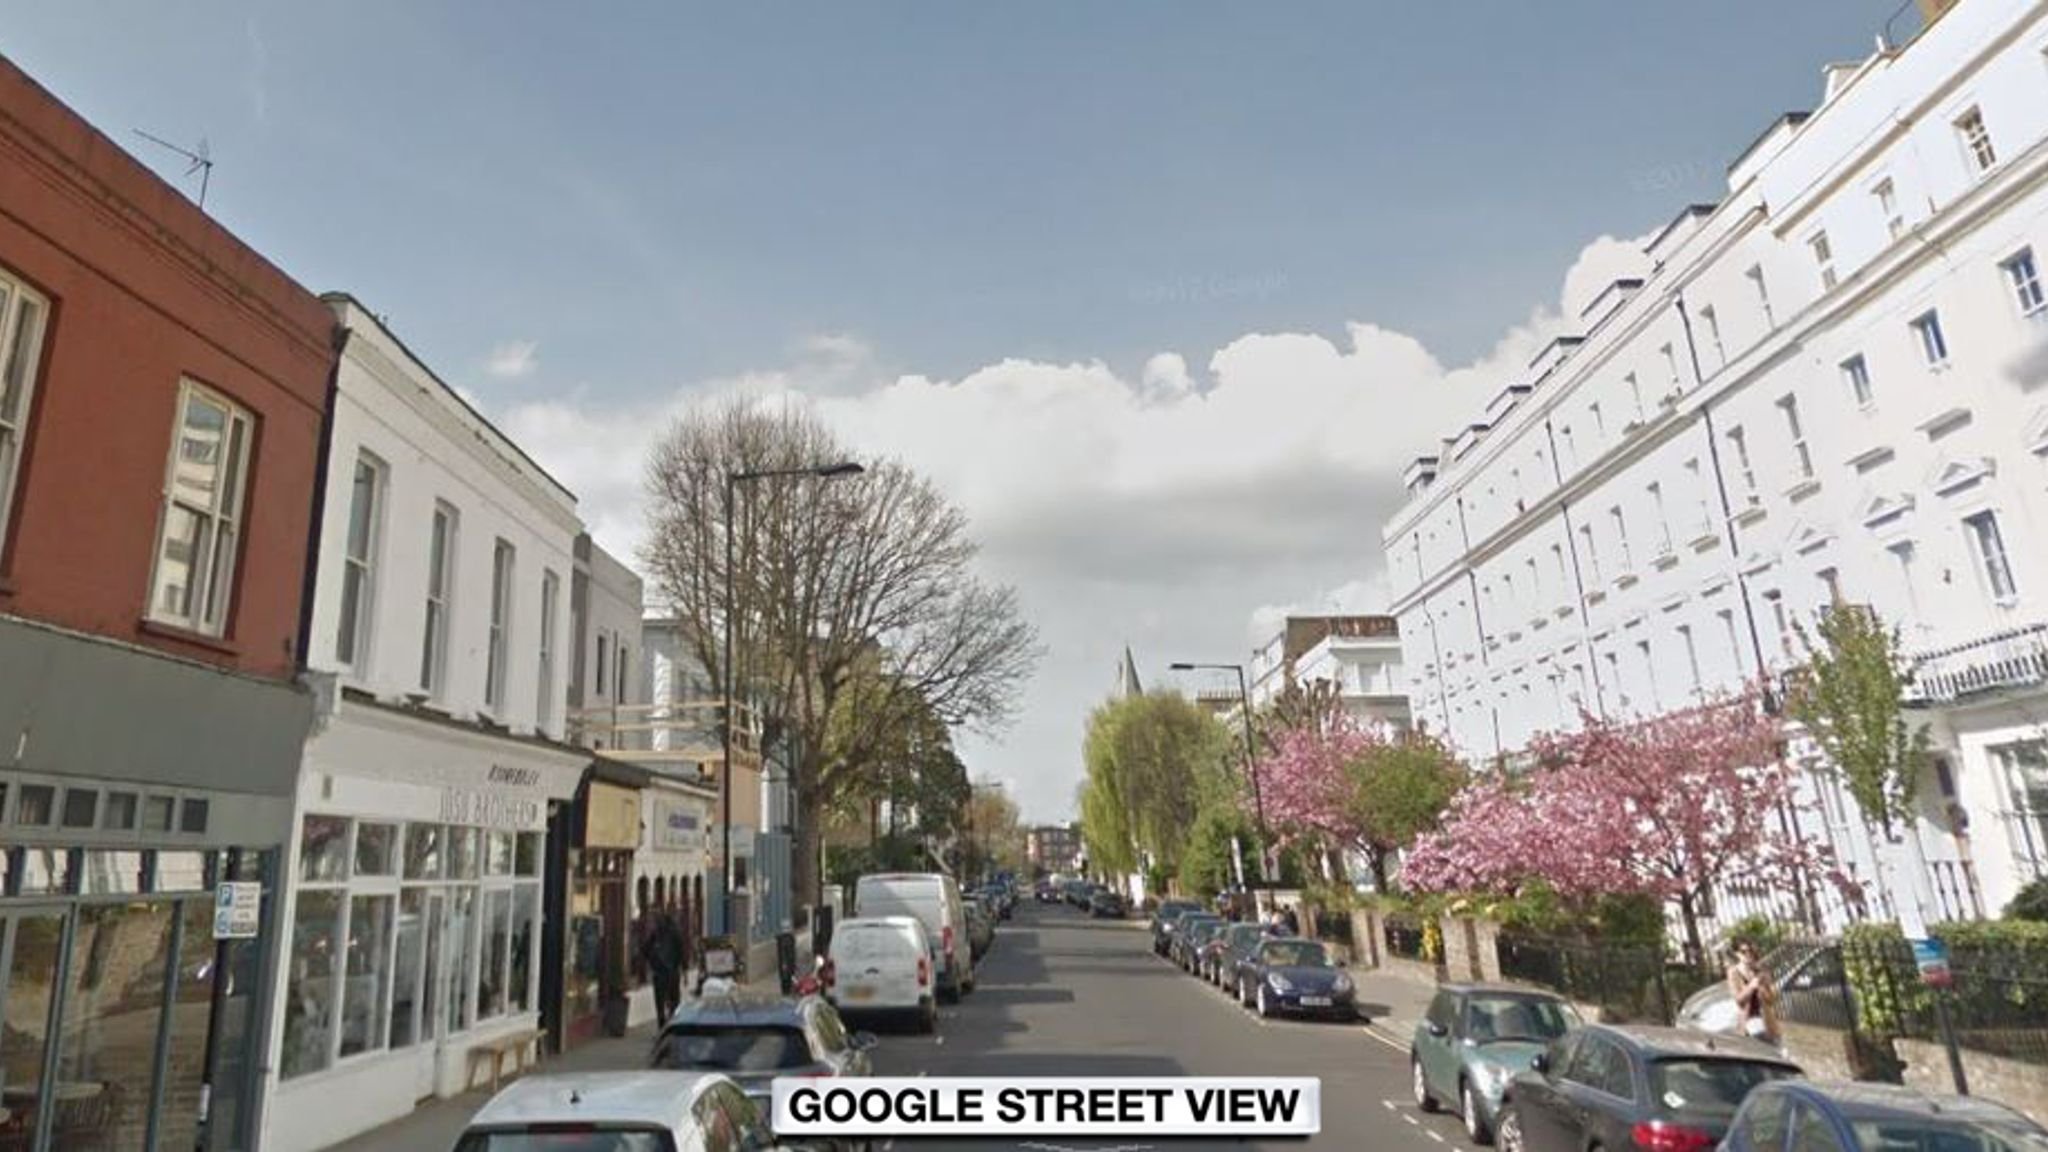 Notting Hill Ladbroke Grove suspected shoplifter 'attacked staff with noxious irritant